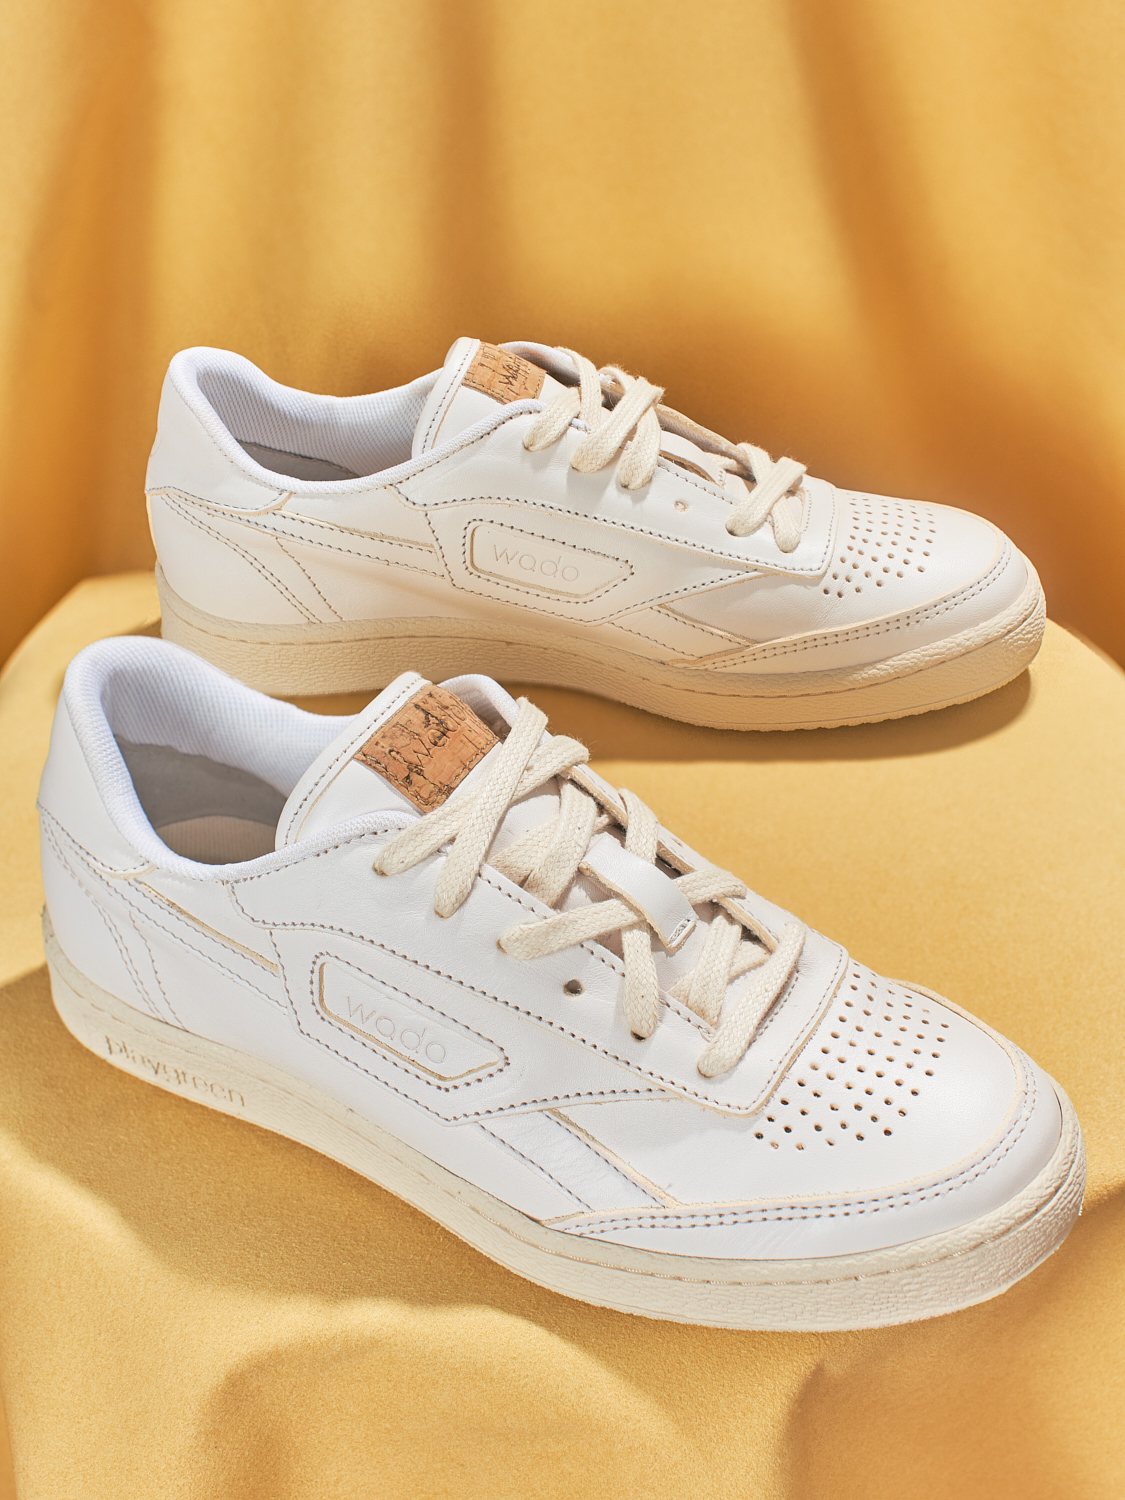 042518_Still_wadoSneakers-319.jpg